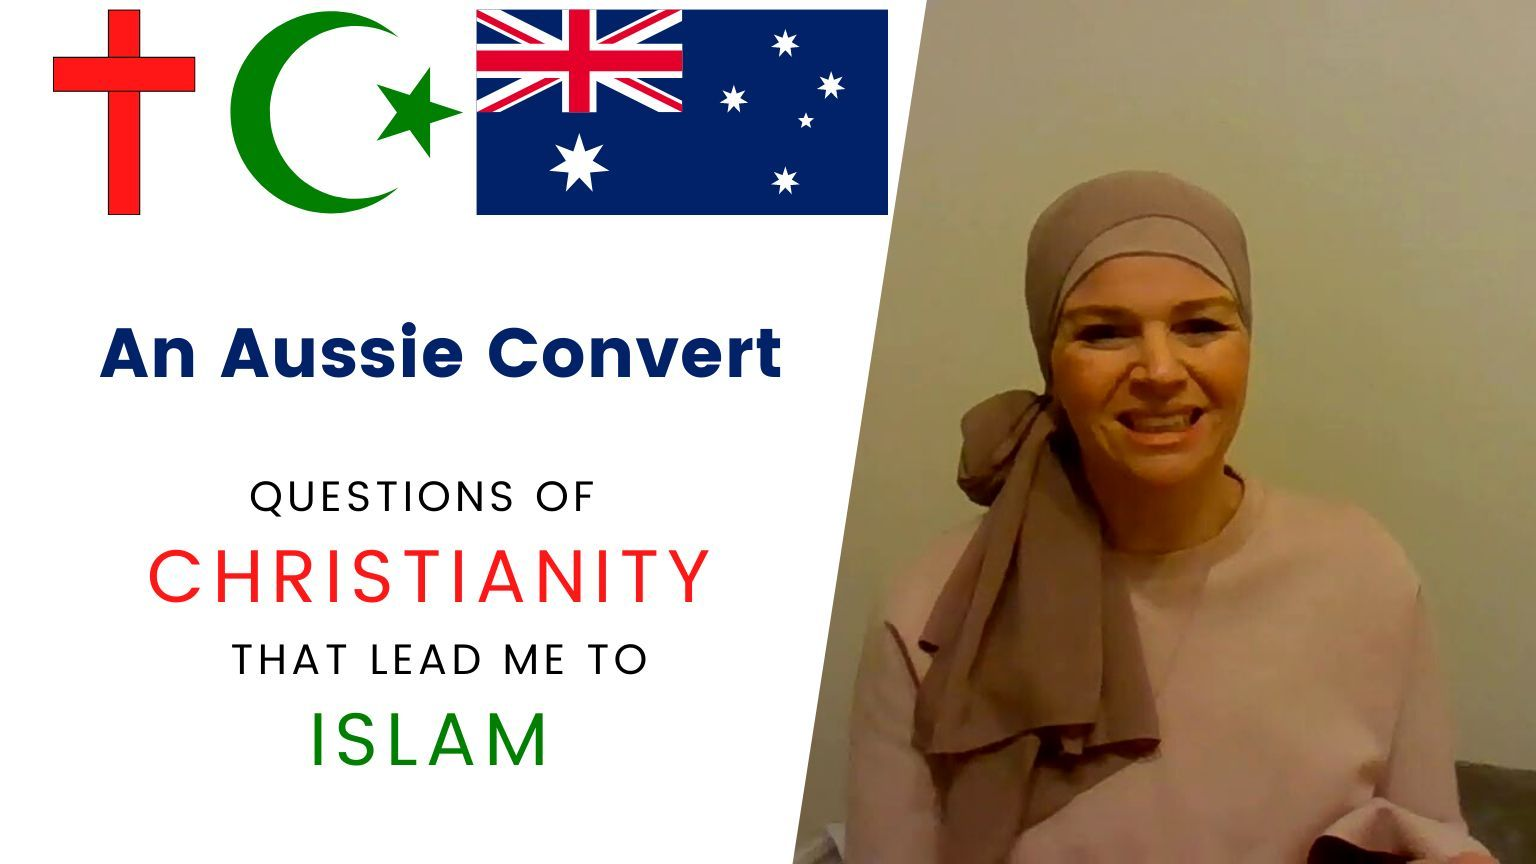 An Aussie Convert questions of Christianity that lead me to Islam